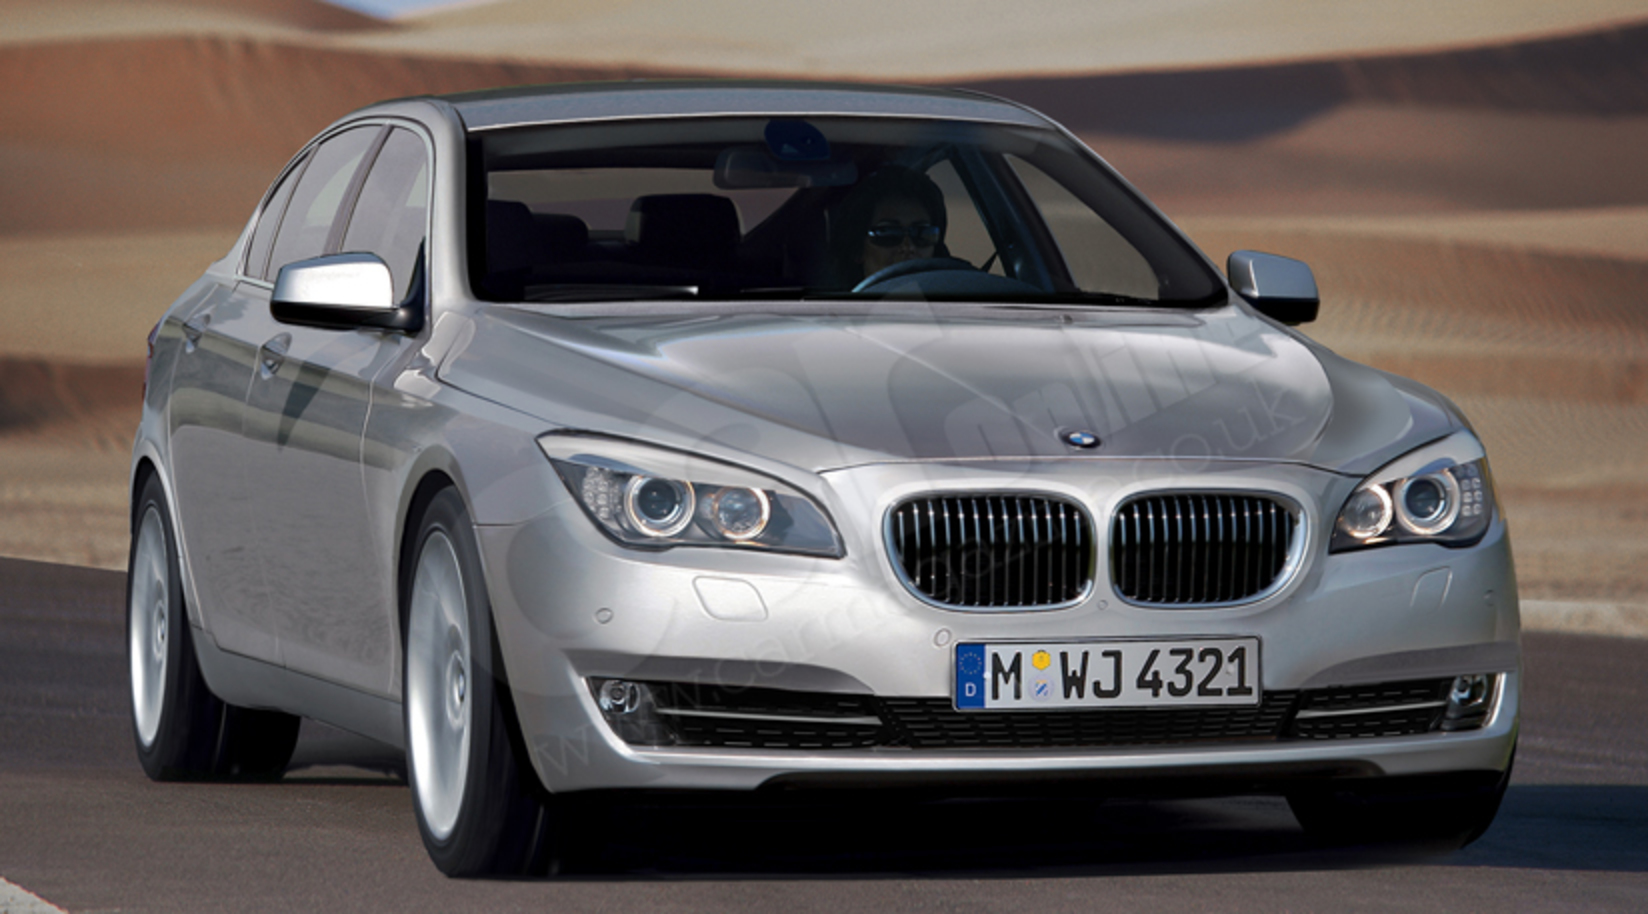 New set of renderings 2011 BMW 5 Series – Rear photo included